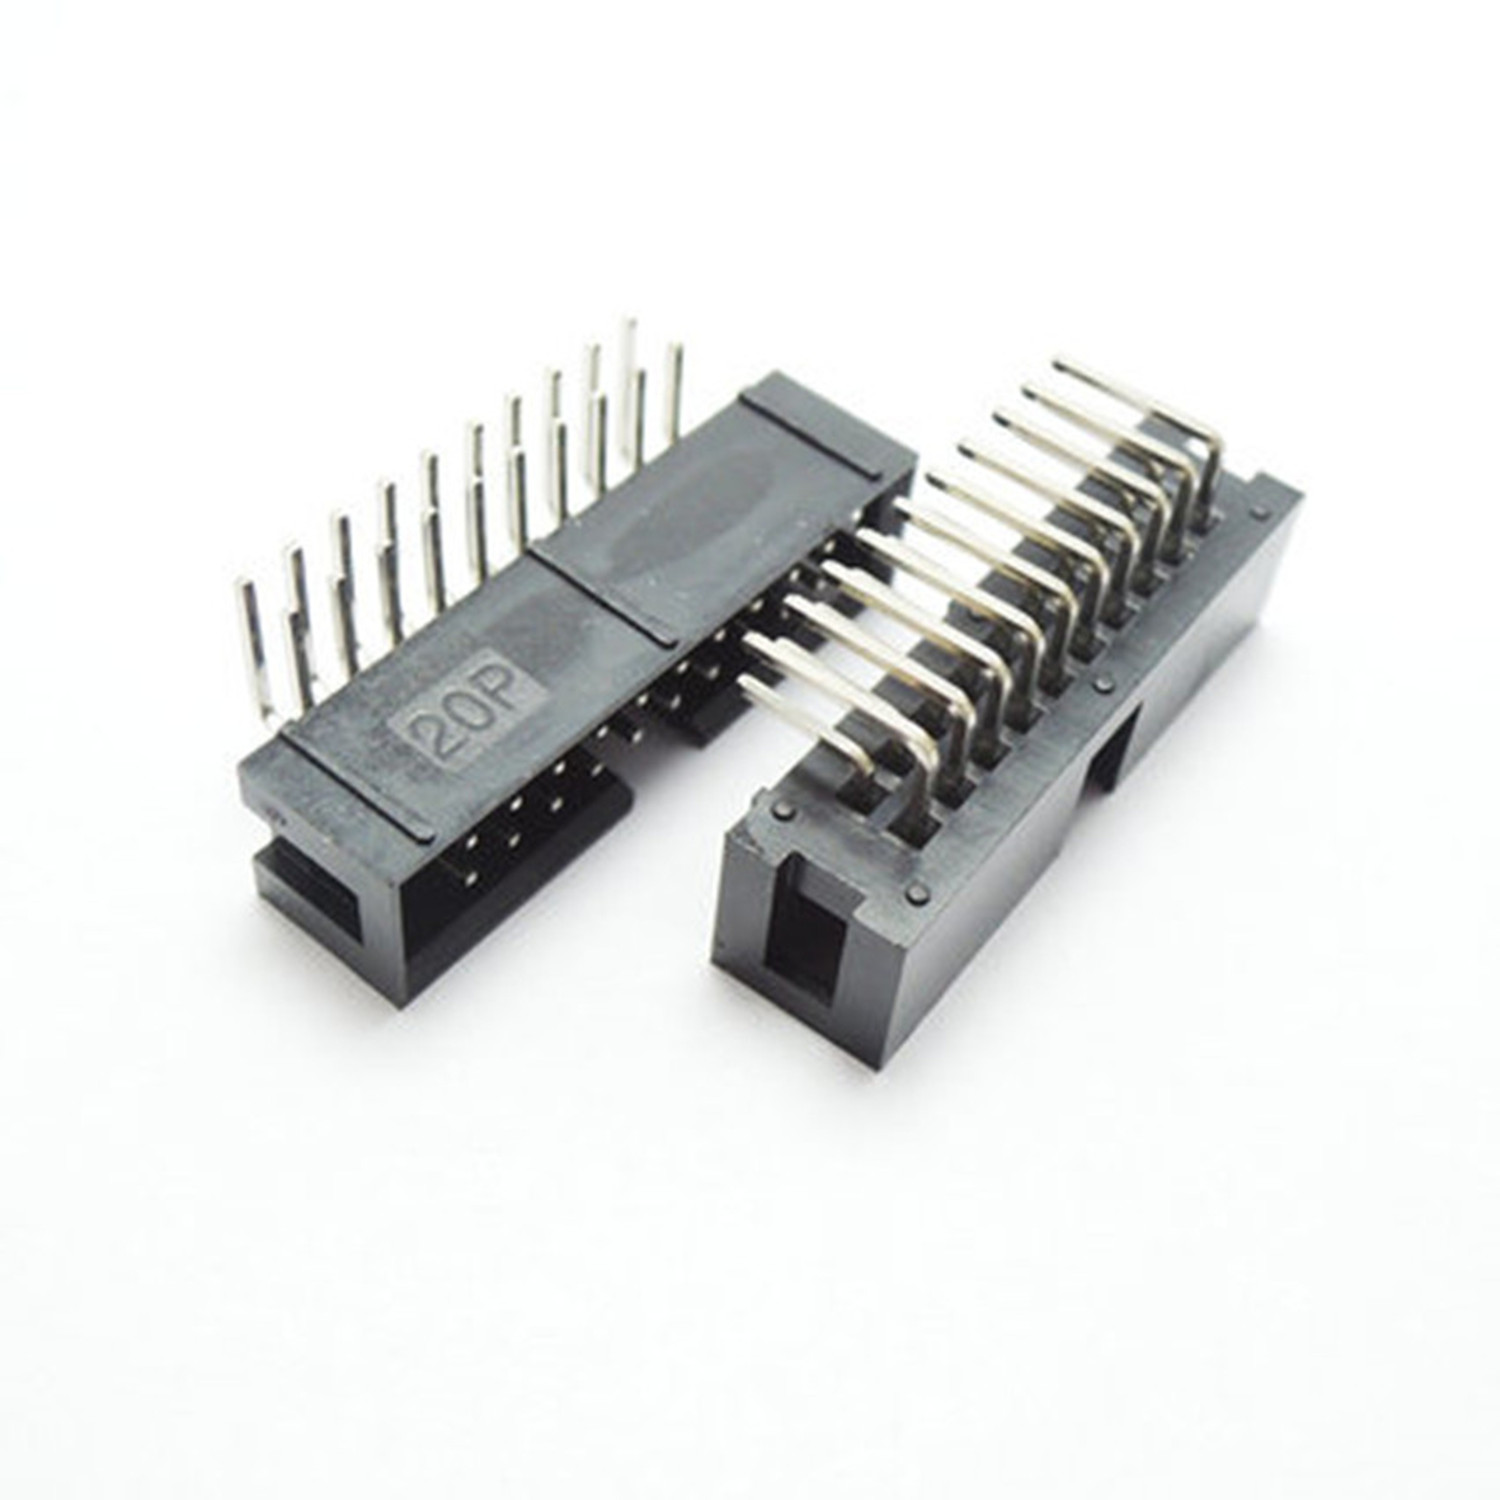 10PCS DC3 20 Pin 2x10Pin Right Angle Double Row Pitch 2.54mm Double-spaced Pin Male IDC Socket Box Header Connector High Quality